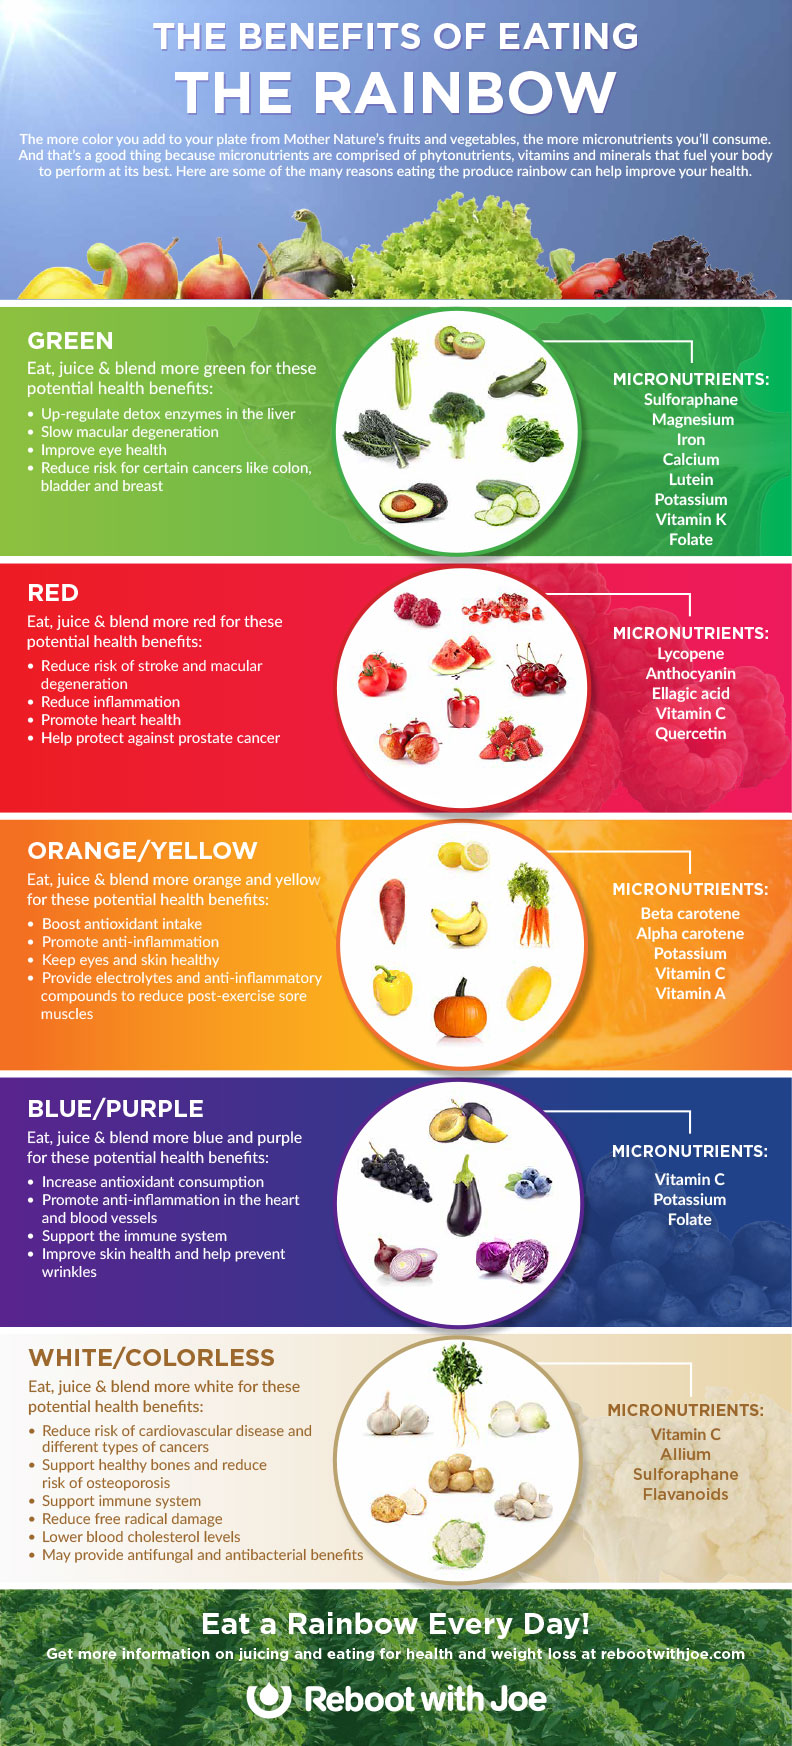 eat-therainbow-infographic.jpg